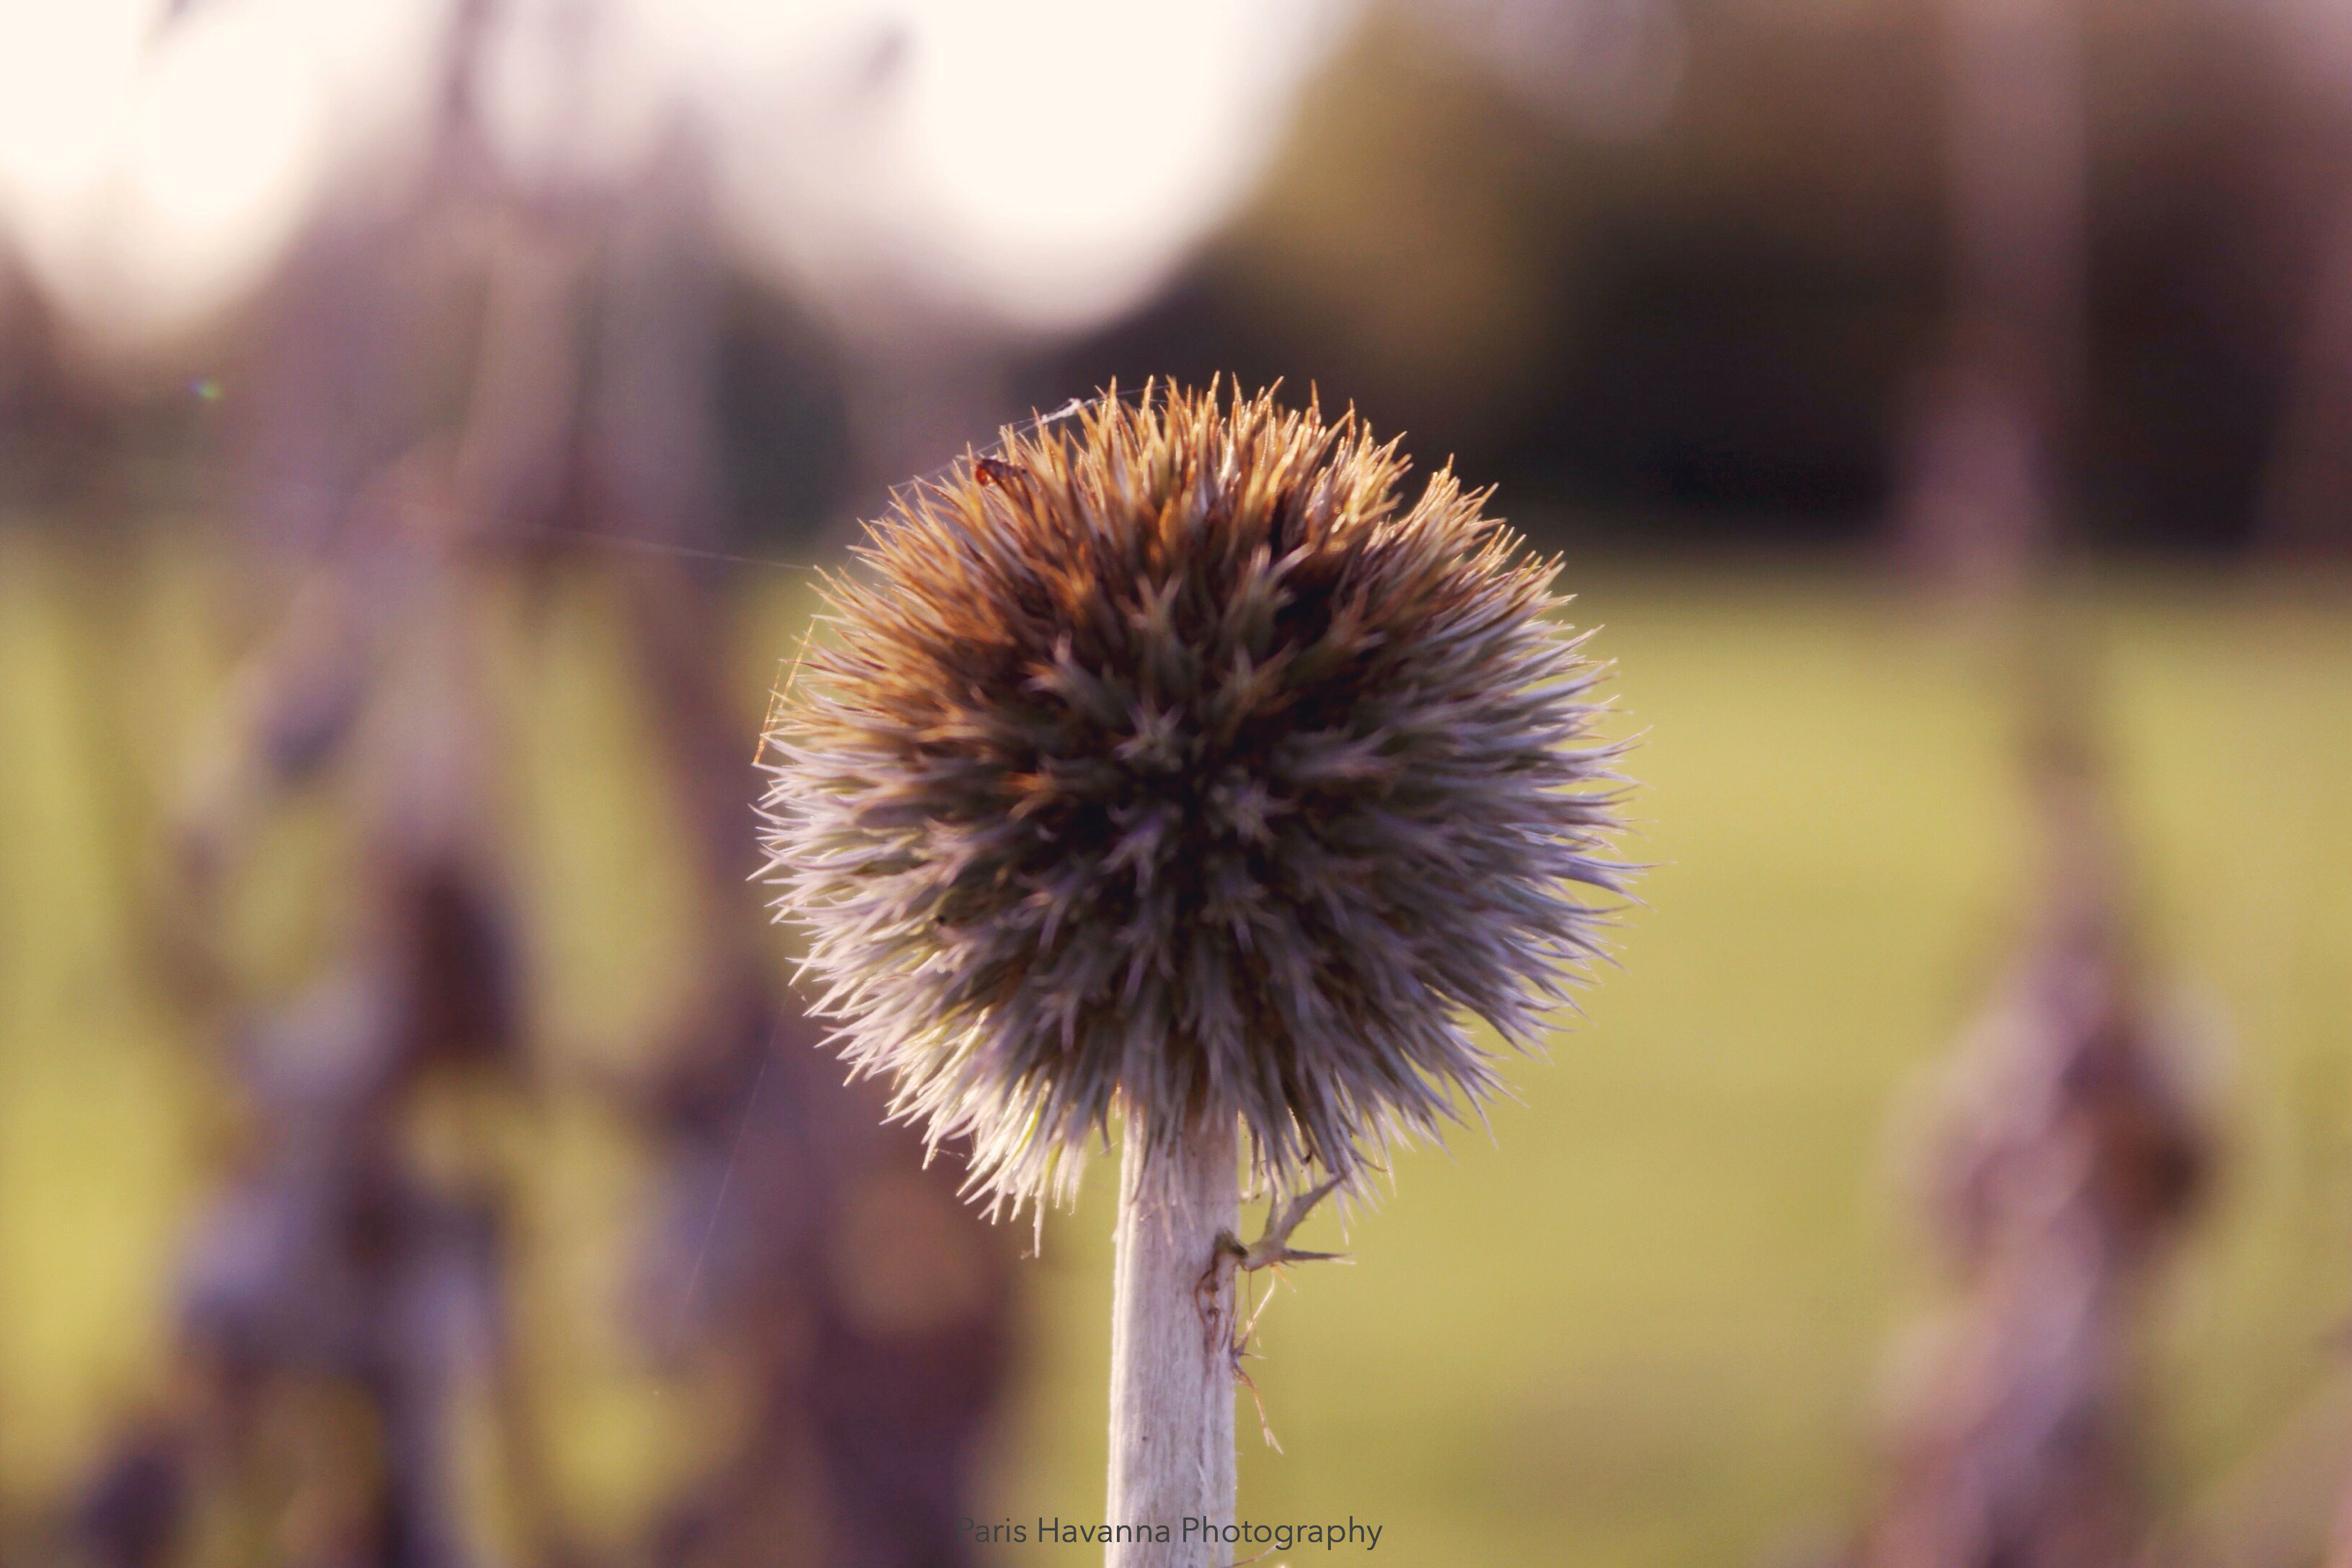 flower, dandelion, growth, focus on foreground, fragility, close-up, freshness, stem, flower head, nature, plant, beauty in nature, uncultivated, single flower, selective focus, wildflower, outdoors, botany, day, no people